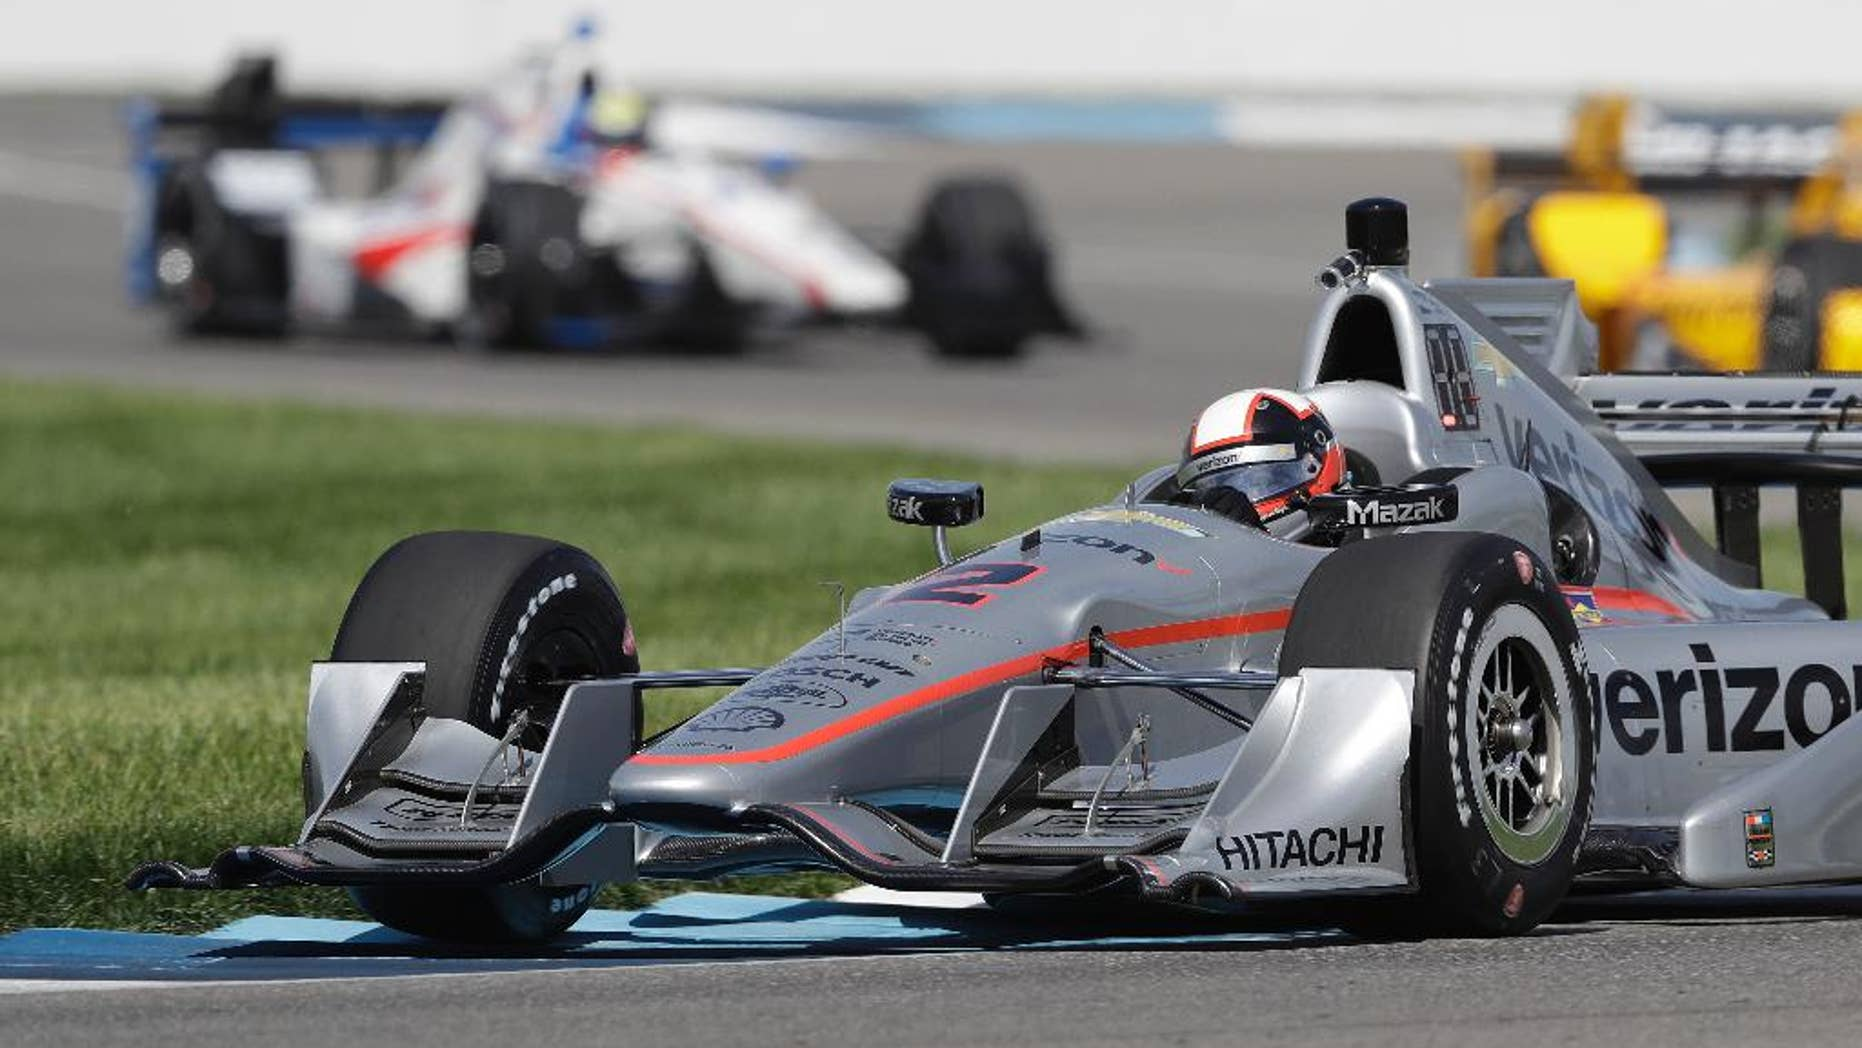 Juan Pablo Montoya, of Colombia, steers his car during practice session for the Grand Prix of Indianapolis auto race at Indianapolis Motor Speedway in Indianapolis, Thursday, May 12, 2016. (AP Photo/Darron Cummings)